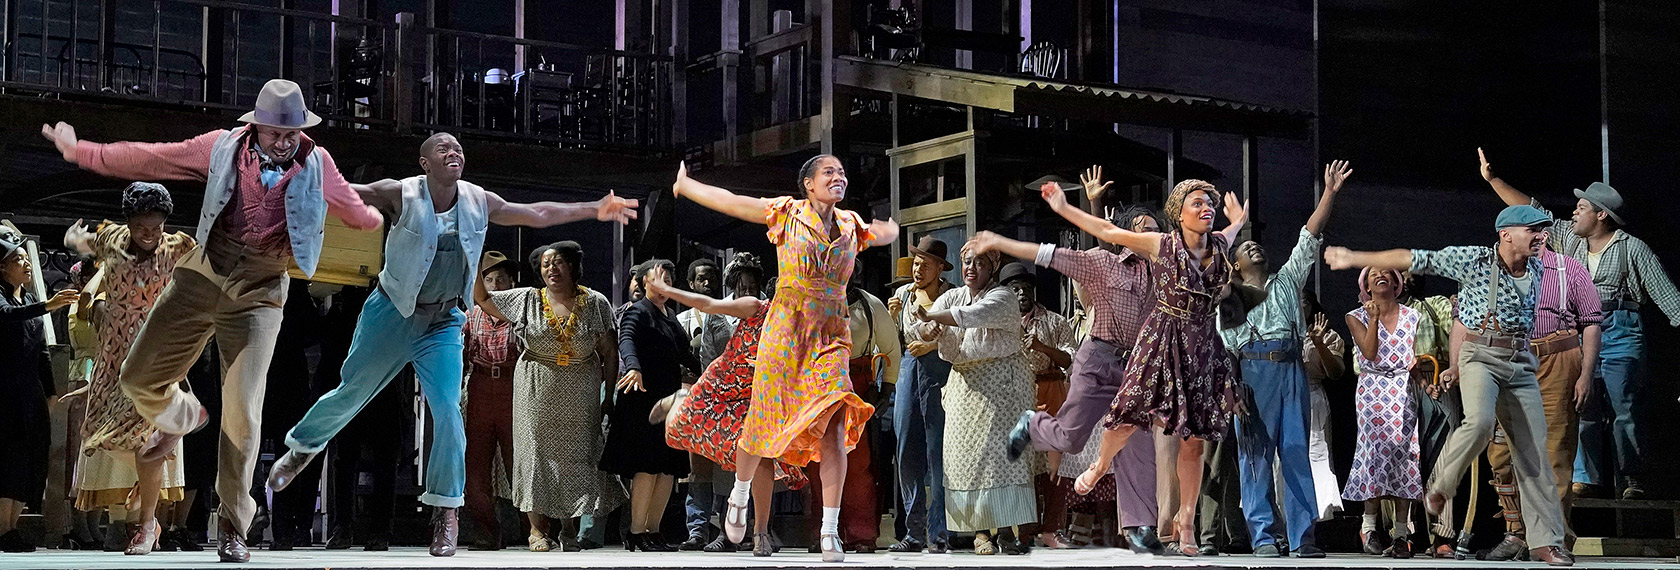 Great Performances at the Met: Porgy and Bess - lg slider